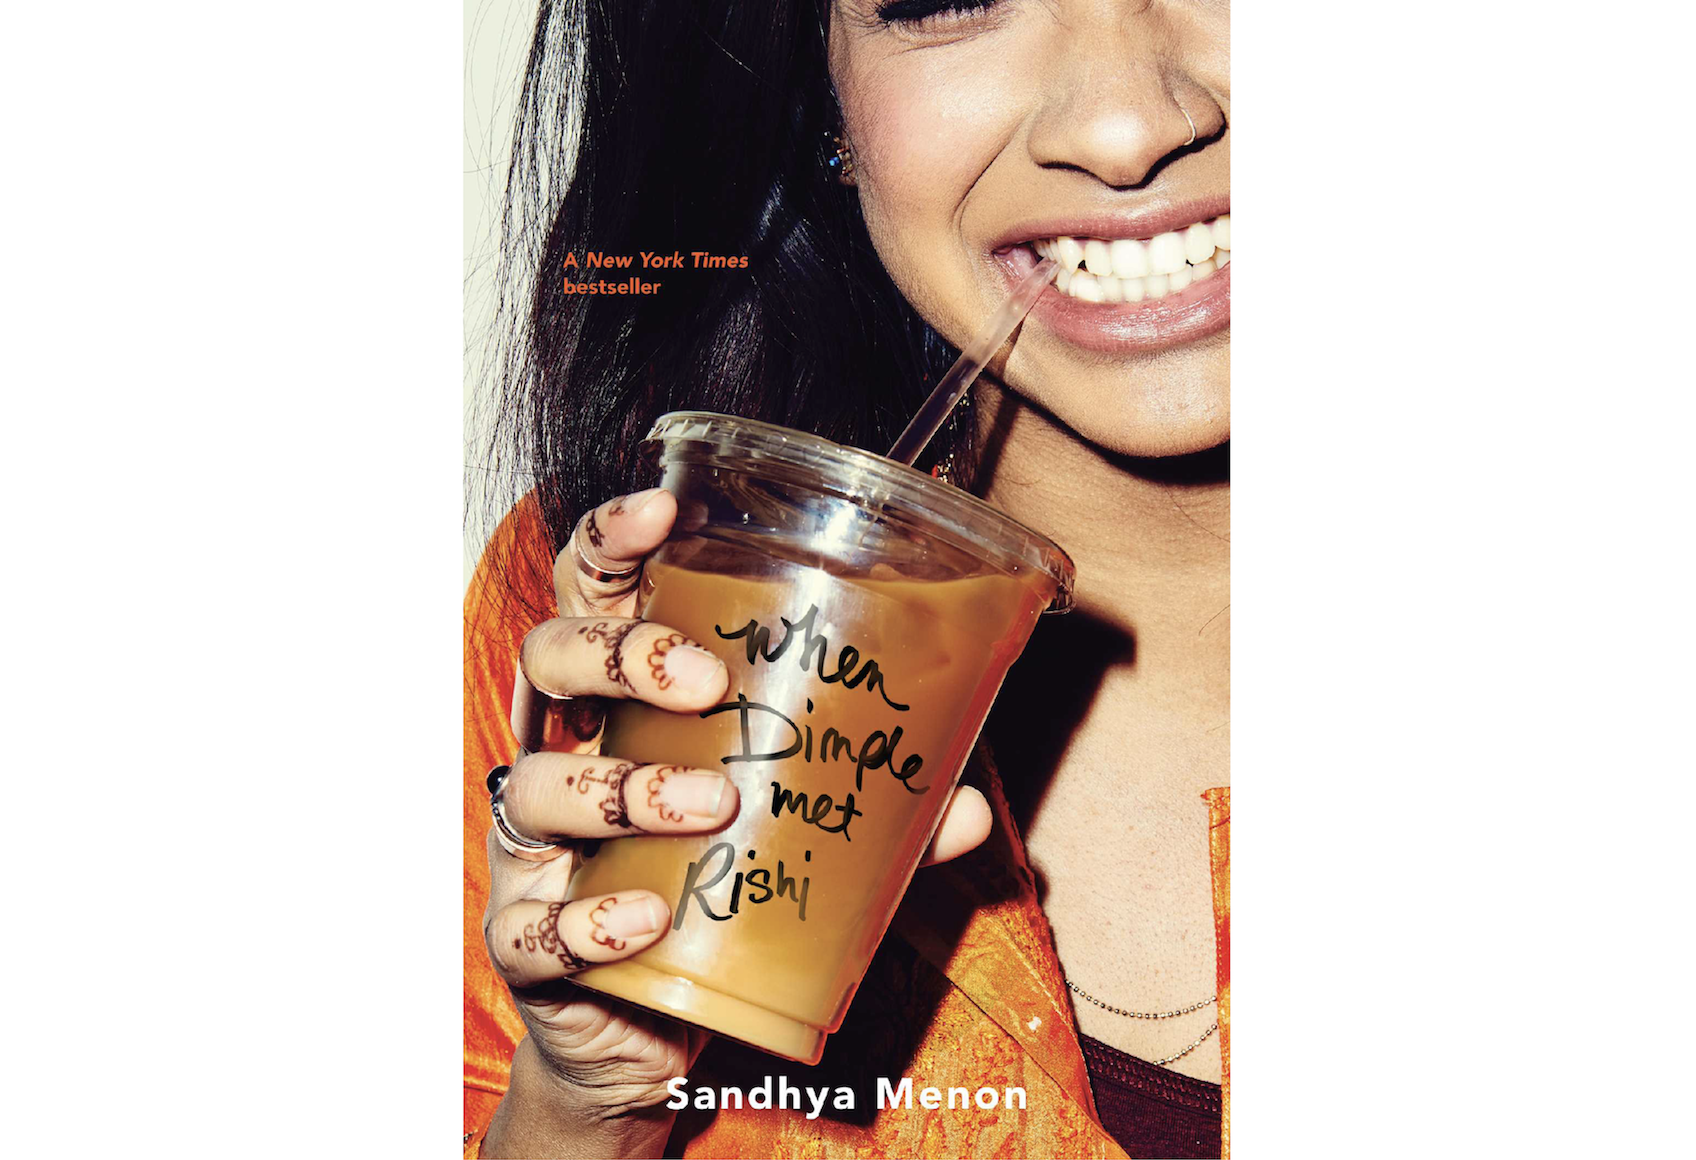 The Standard reviews: When Dimple Met Rishi